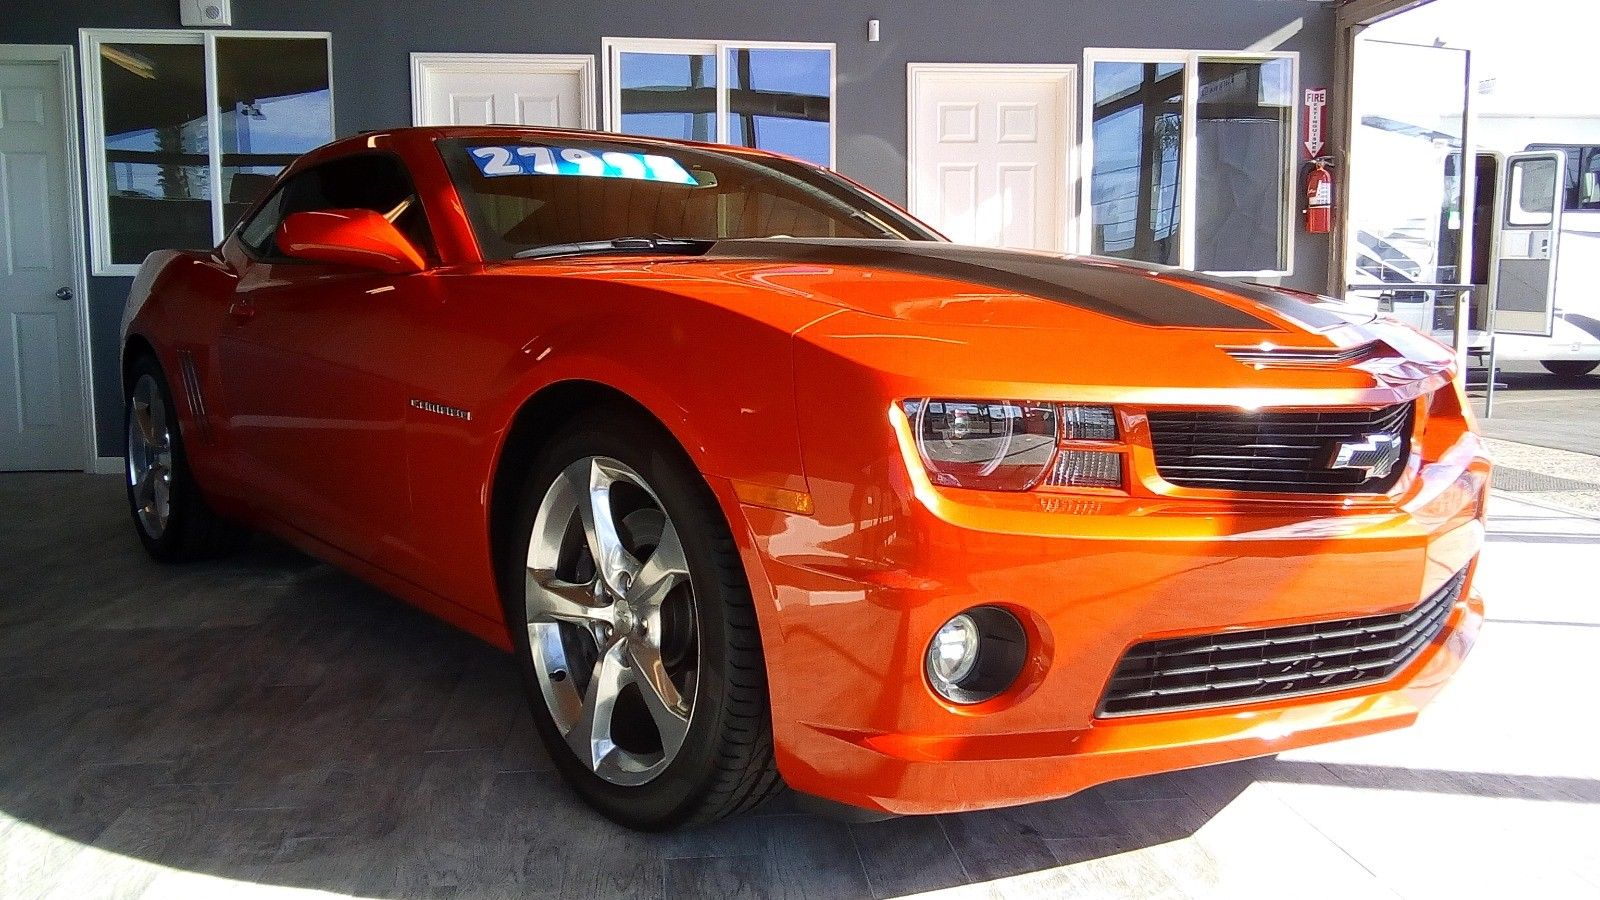 Awesome 2017 Chevrolet Camaro 2 Ss Rs Chevy 6 Sd Only 6500 Original Miles 2018